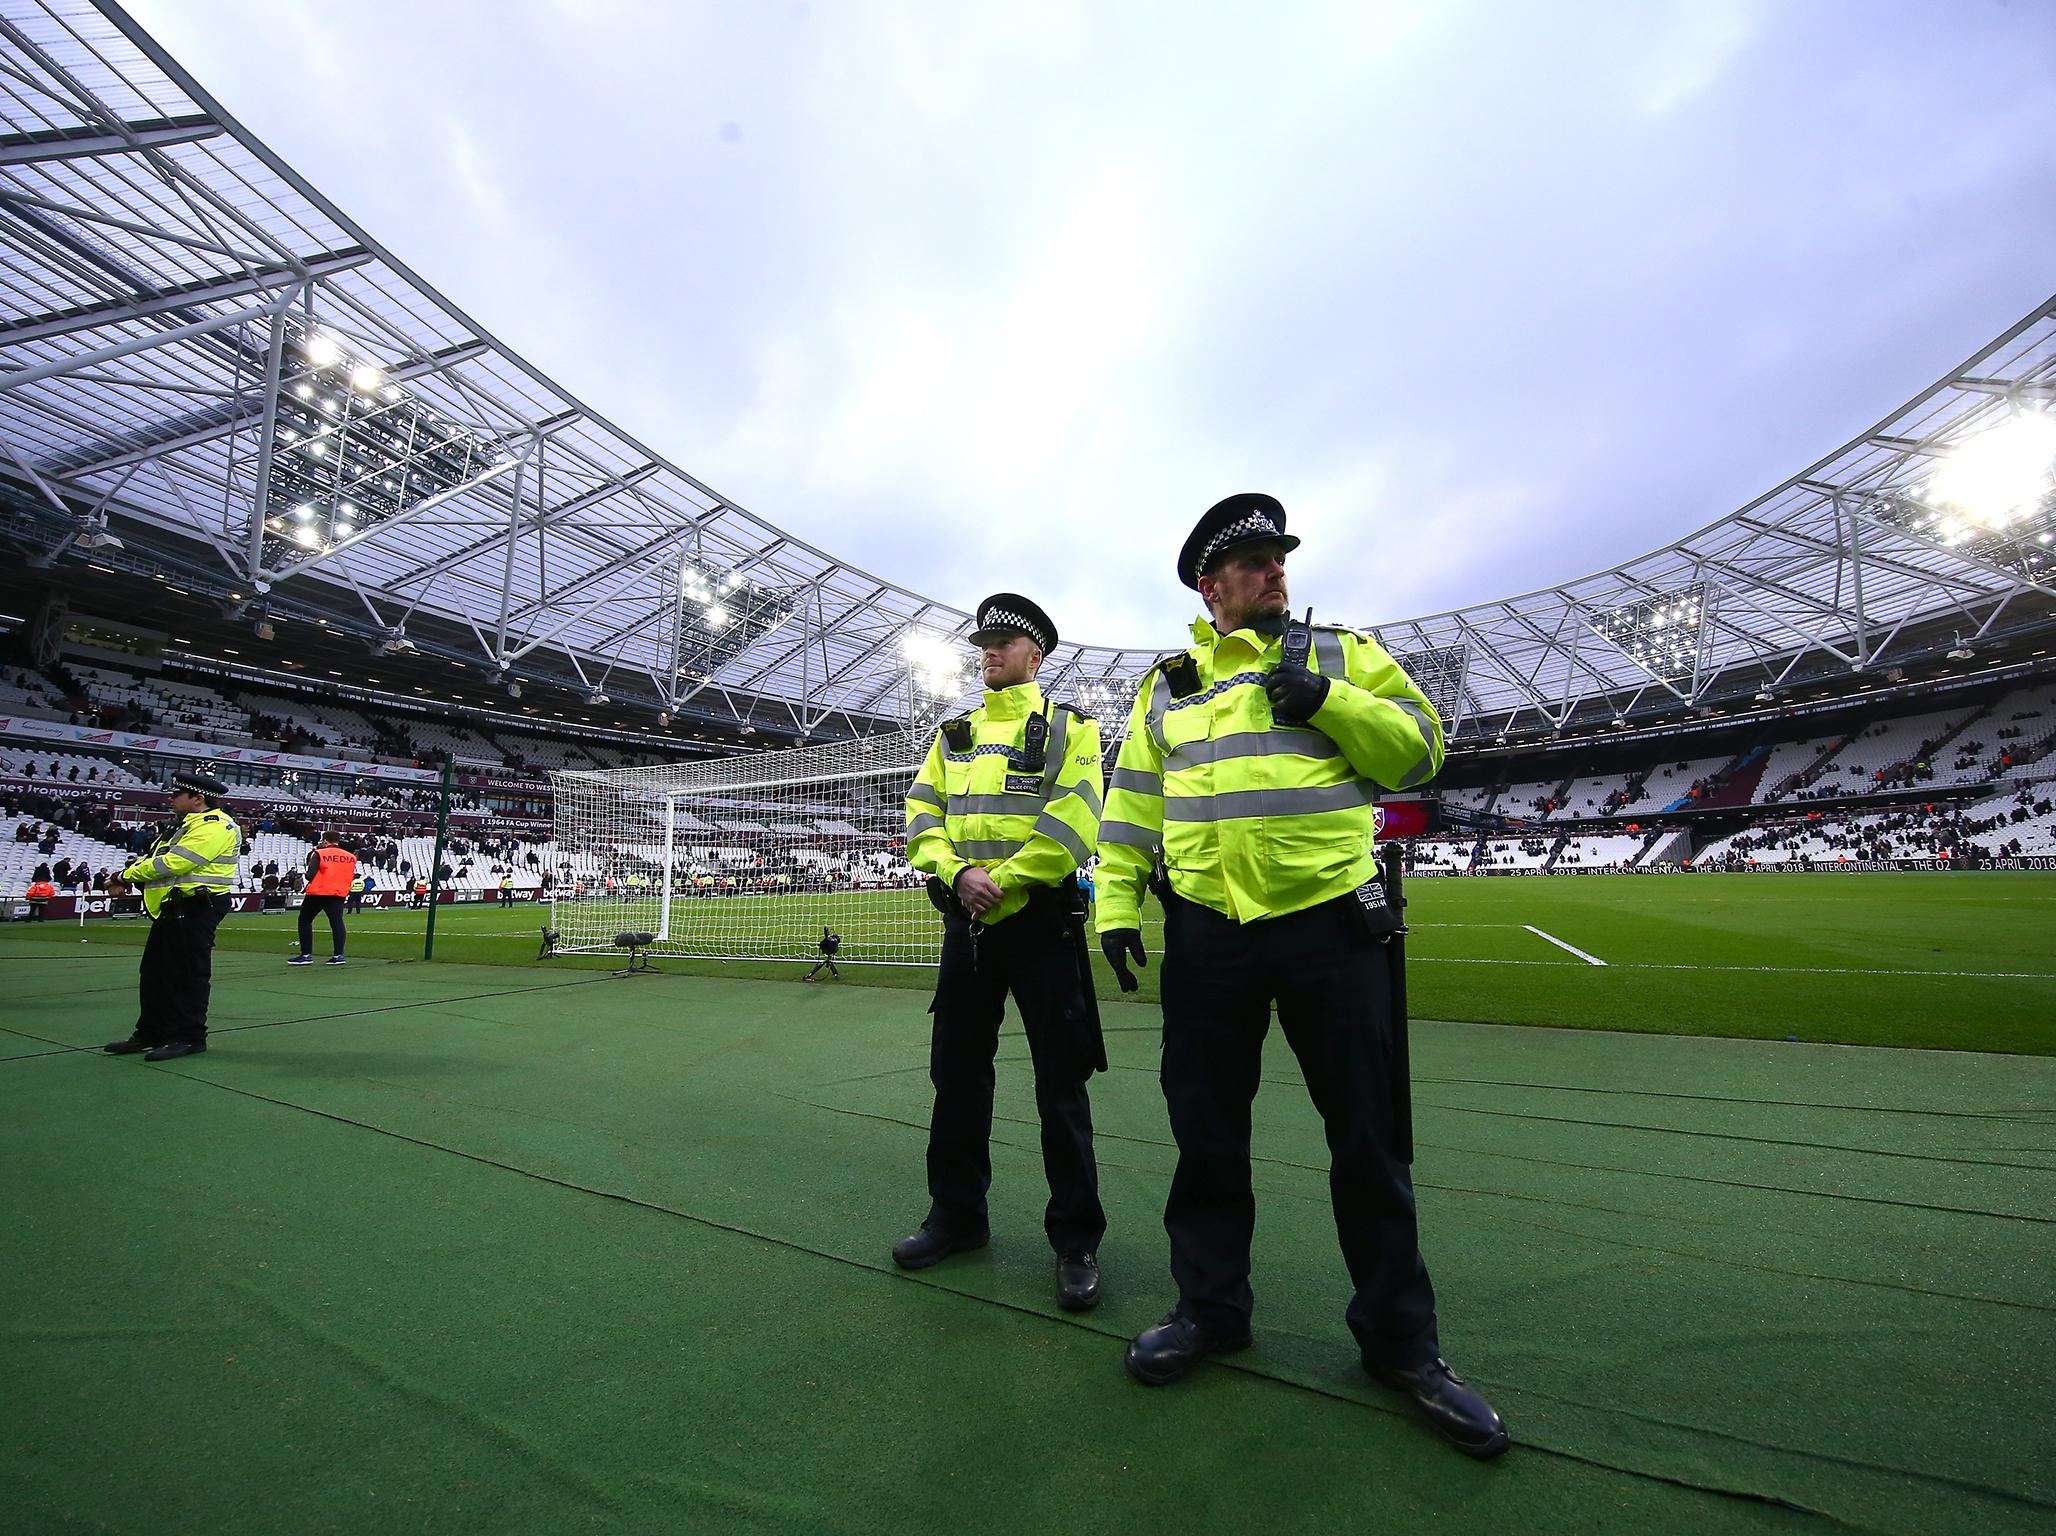 West Ham Stadium Contract Needs Simplifying Says Former London Legacy Development Corporation Heads The Independent The Independent